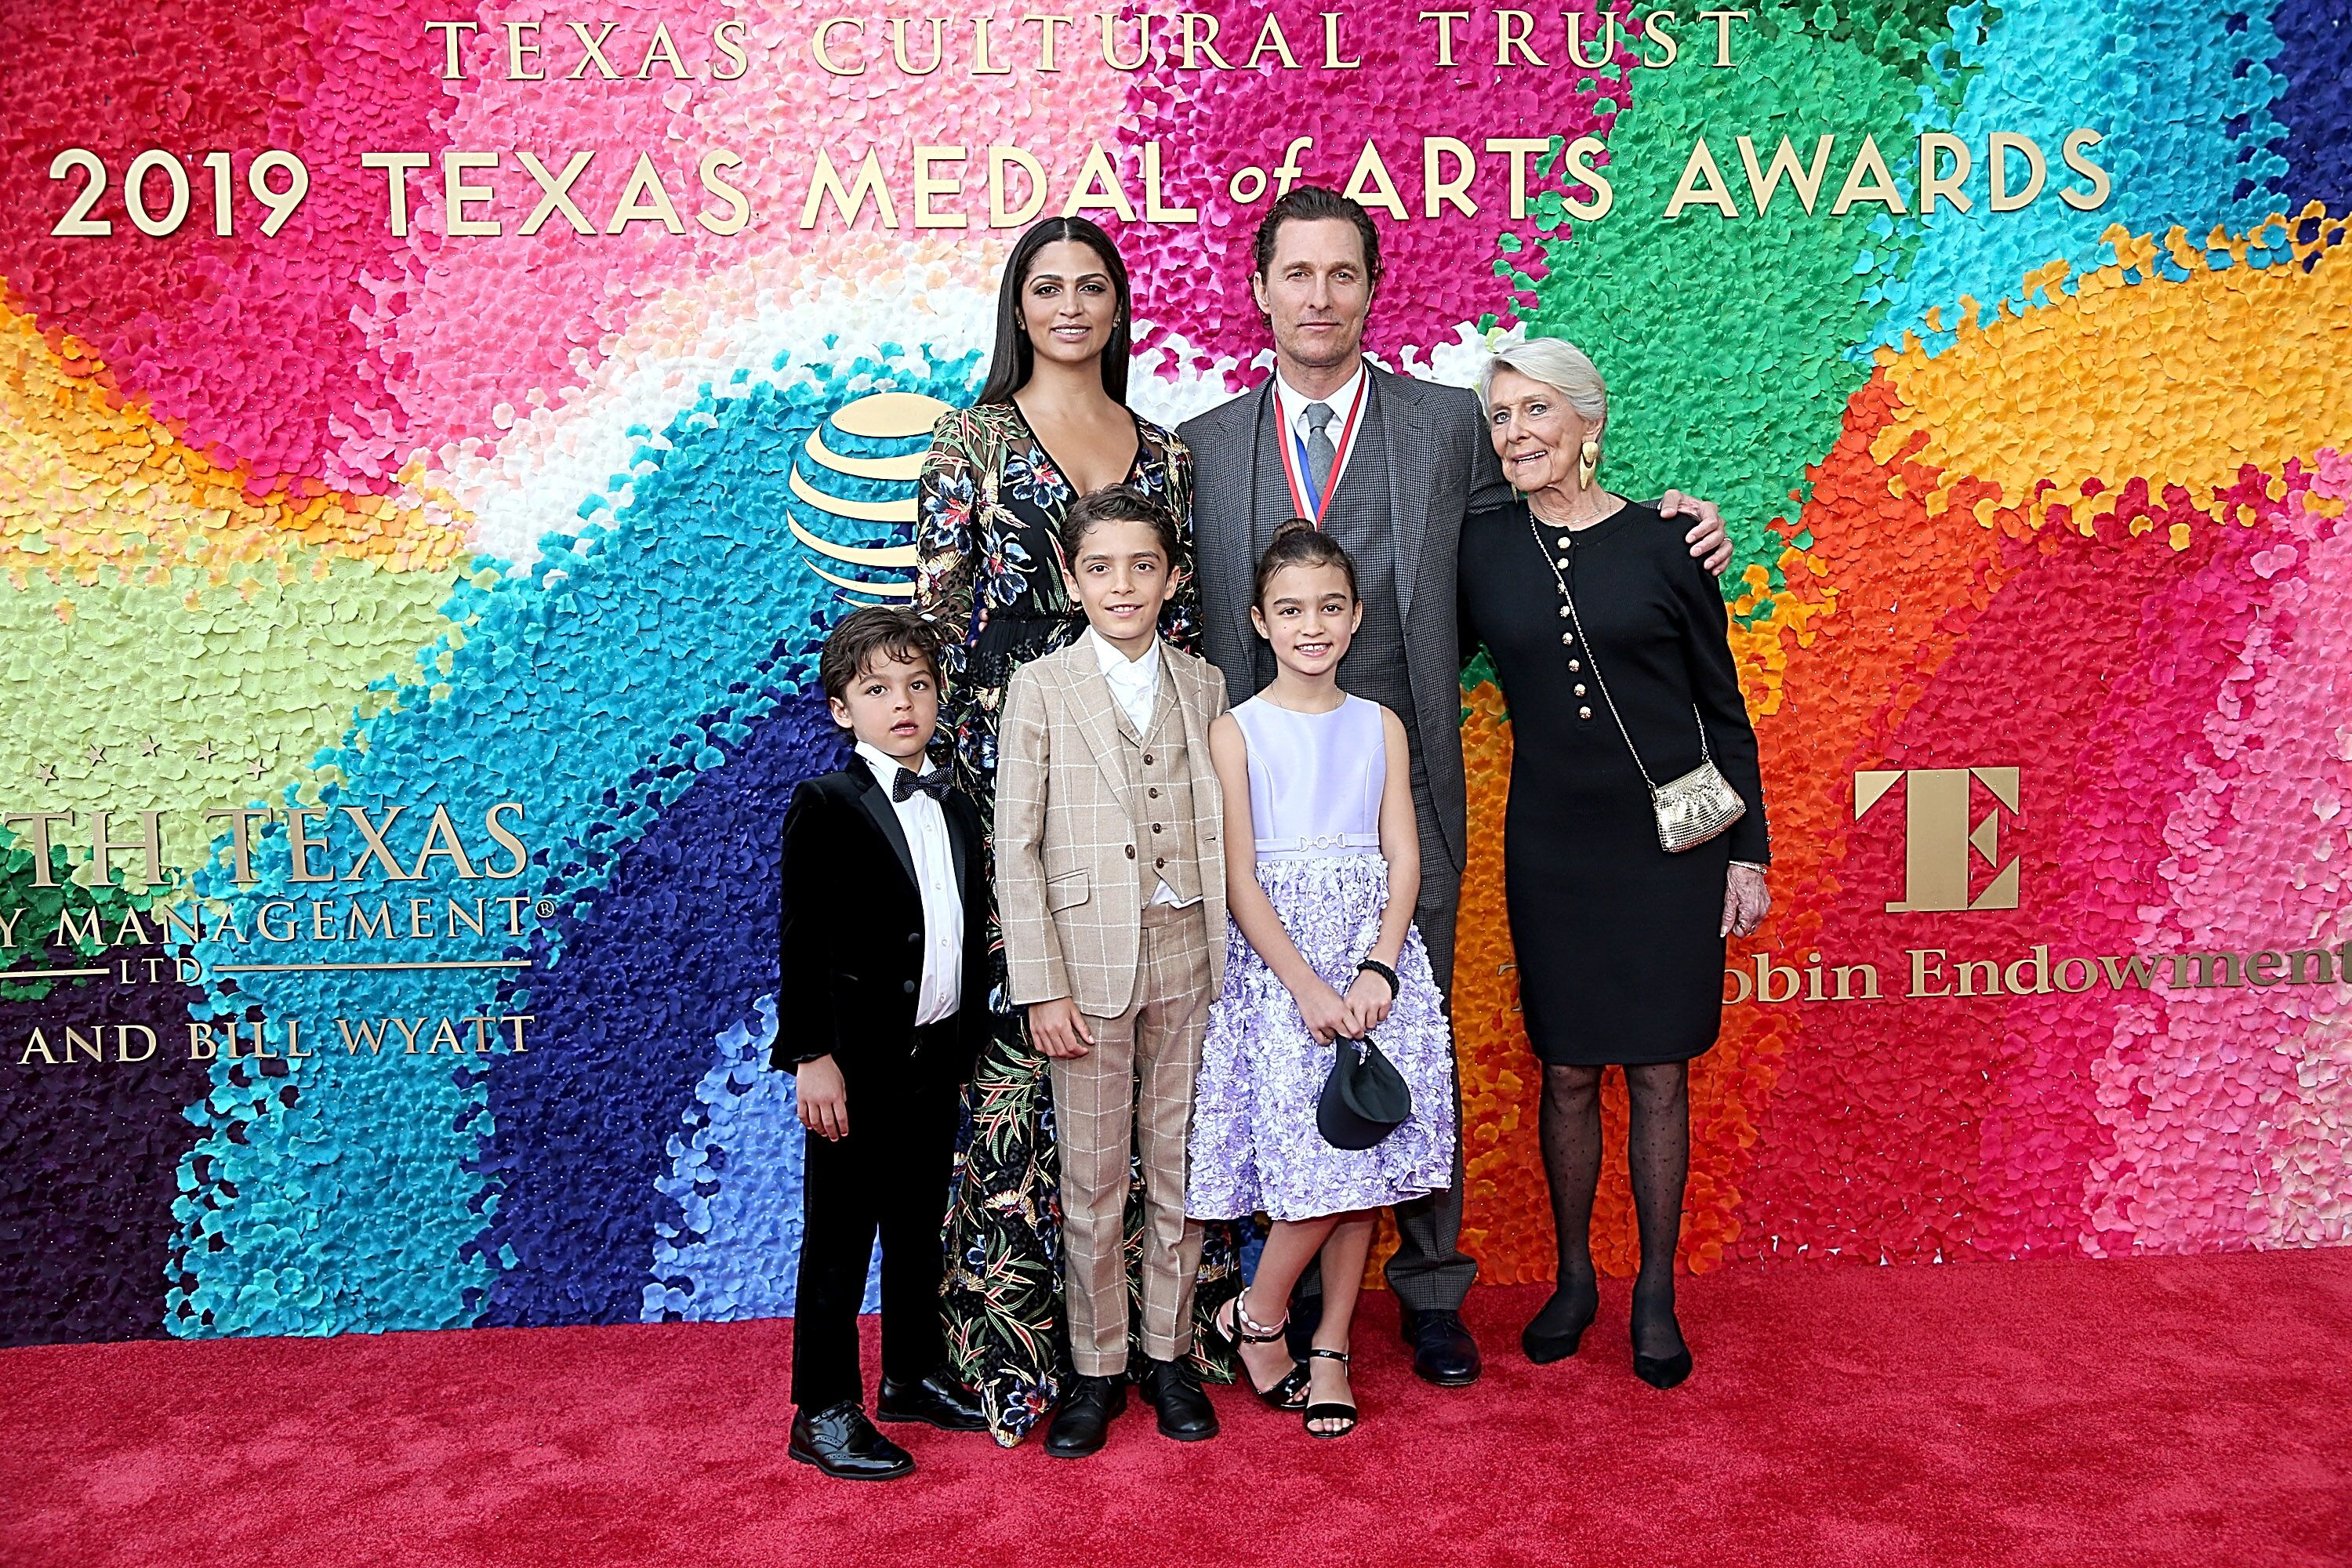 Matthew McConaughey, his wife Camila Alves, his mother Kay and his children at the Texas Medal Of Arts Awards in 2019 | Source: Getty Images